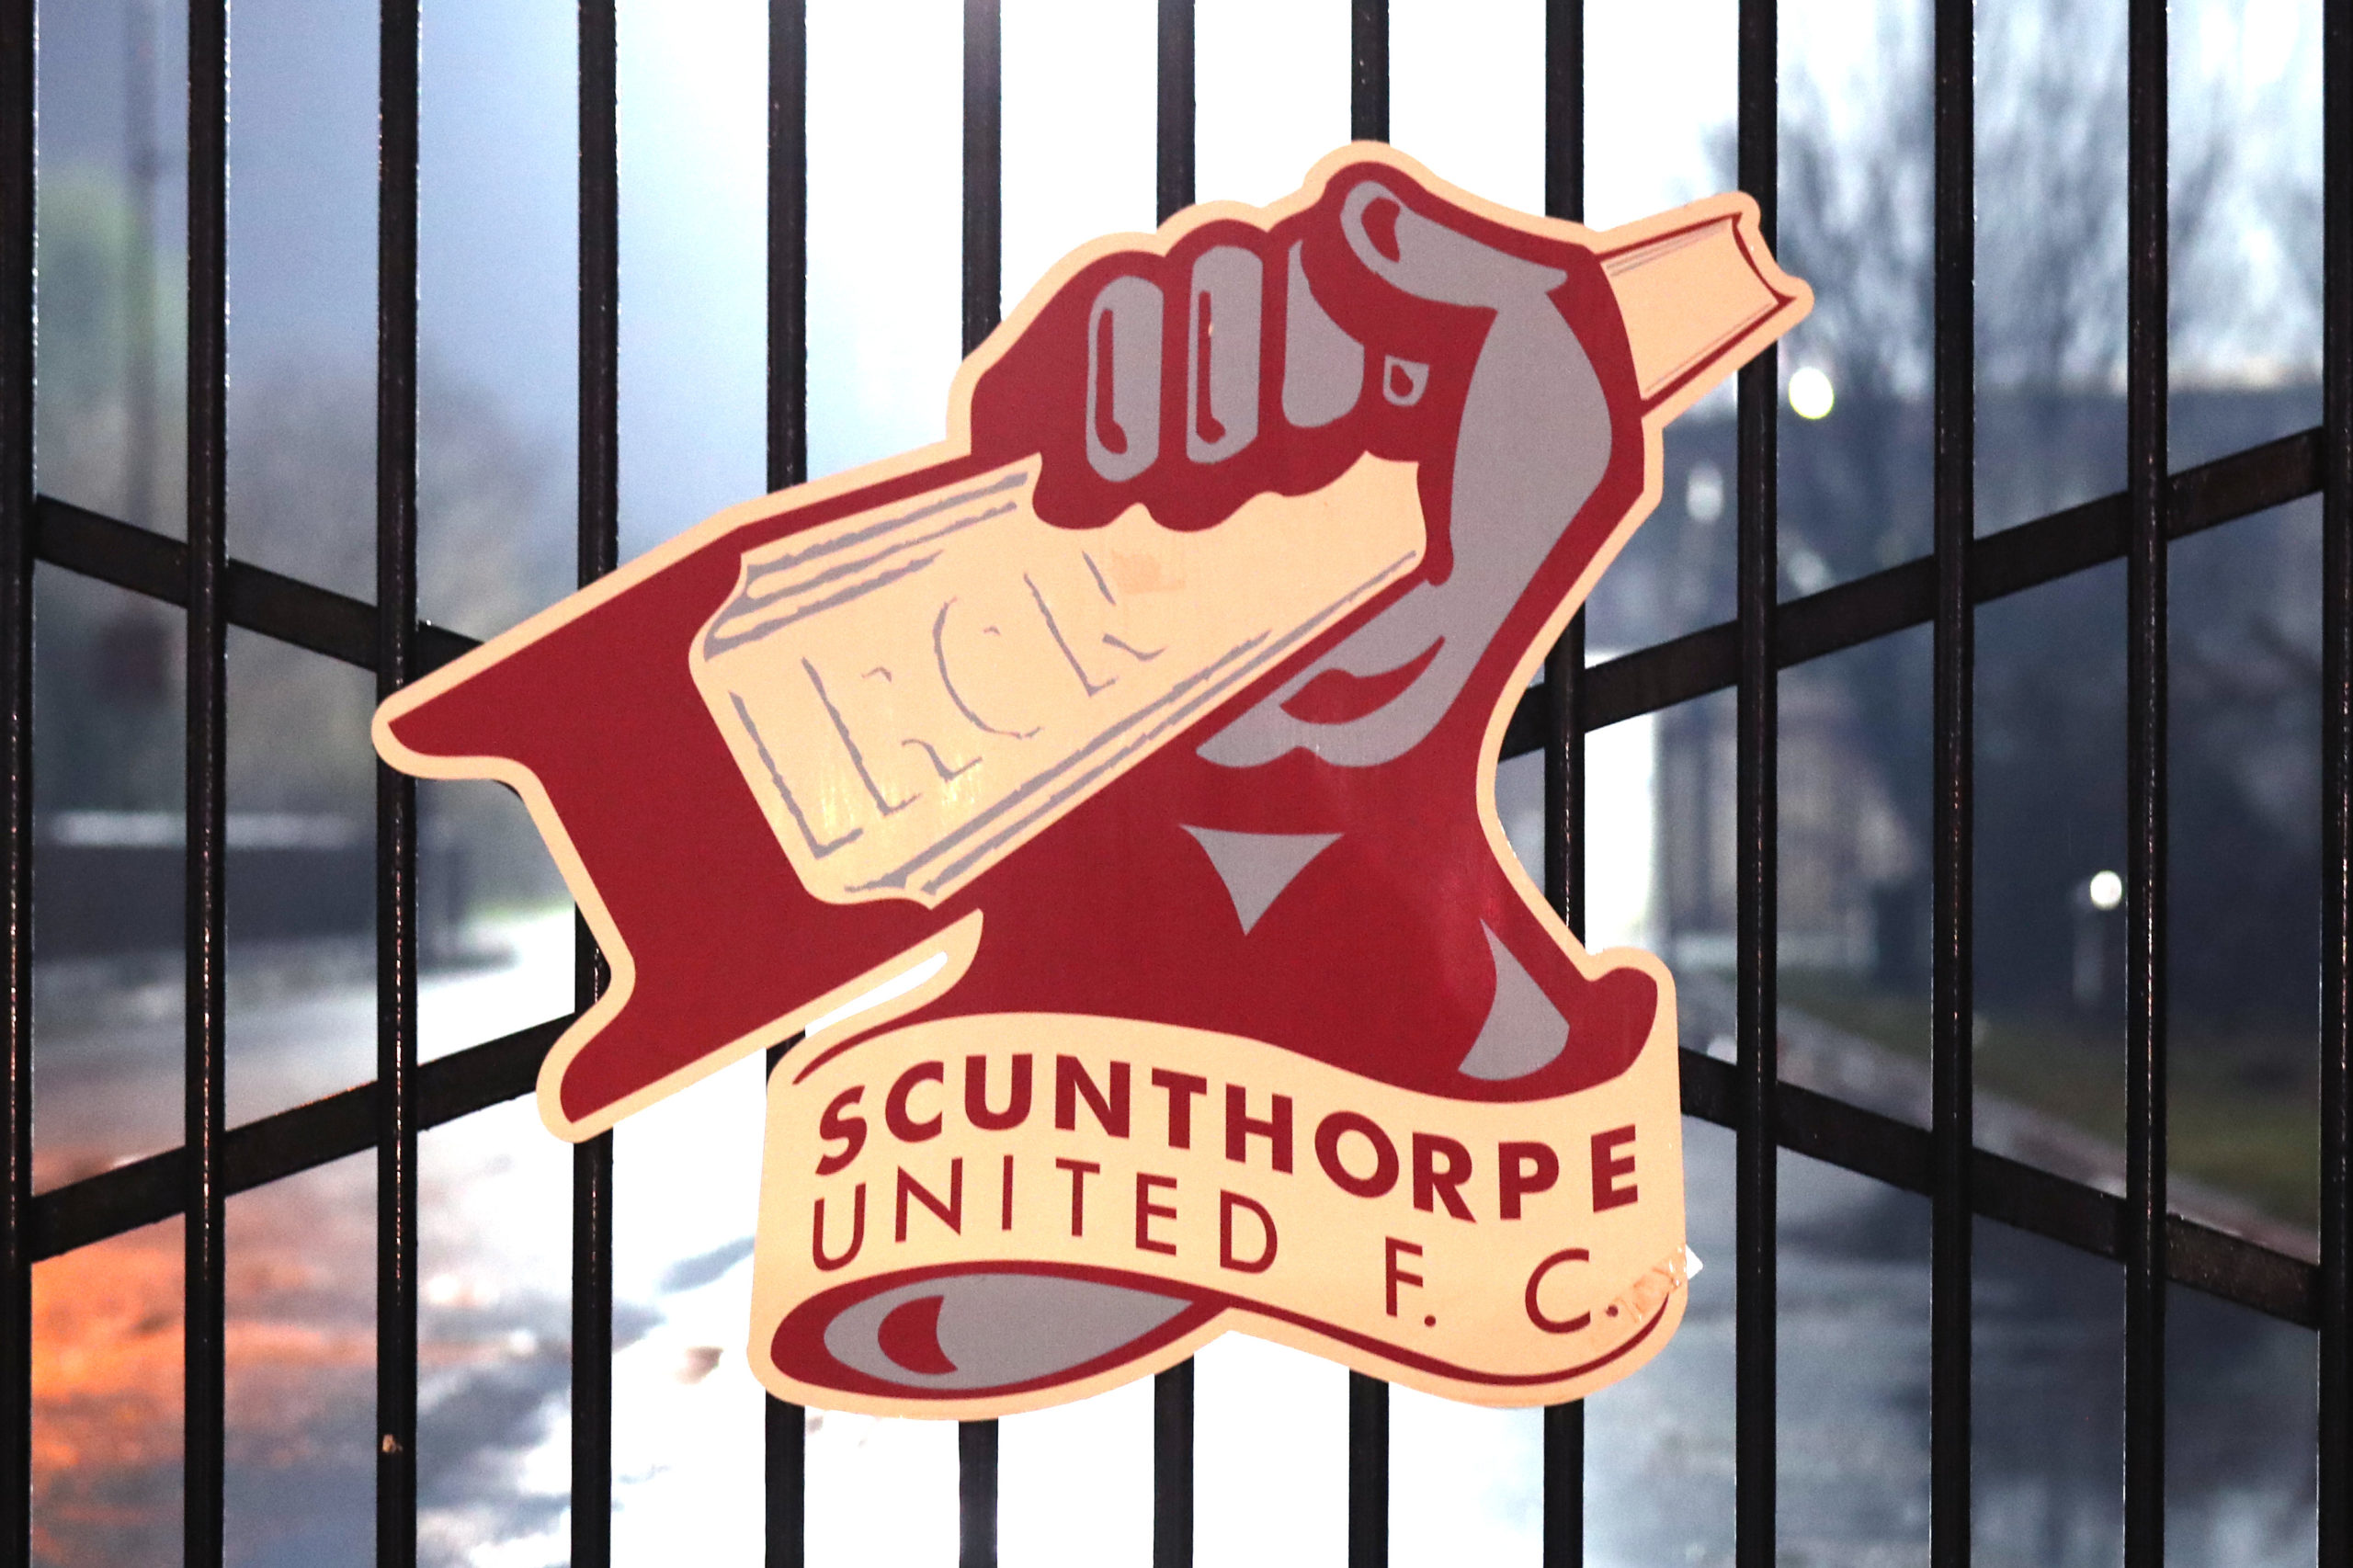 Dawson joins from Scunthorpe United